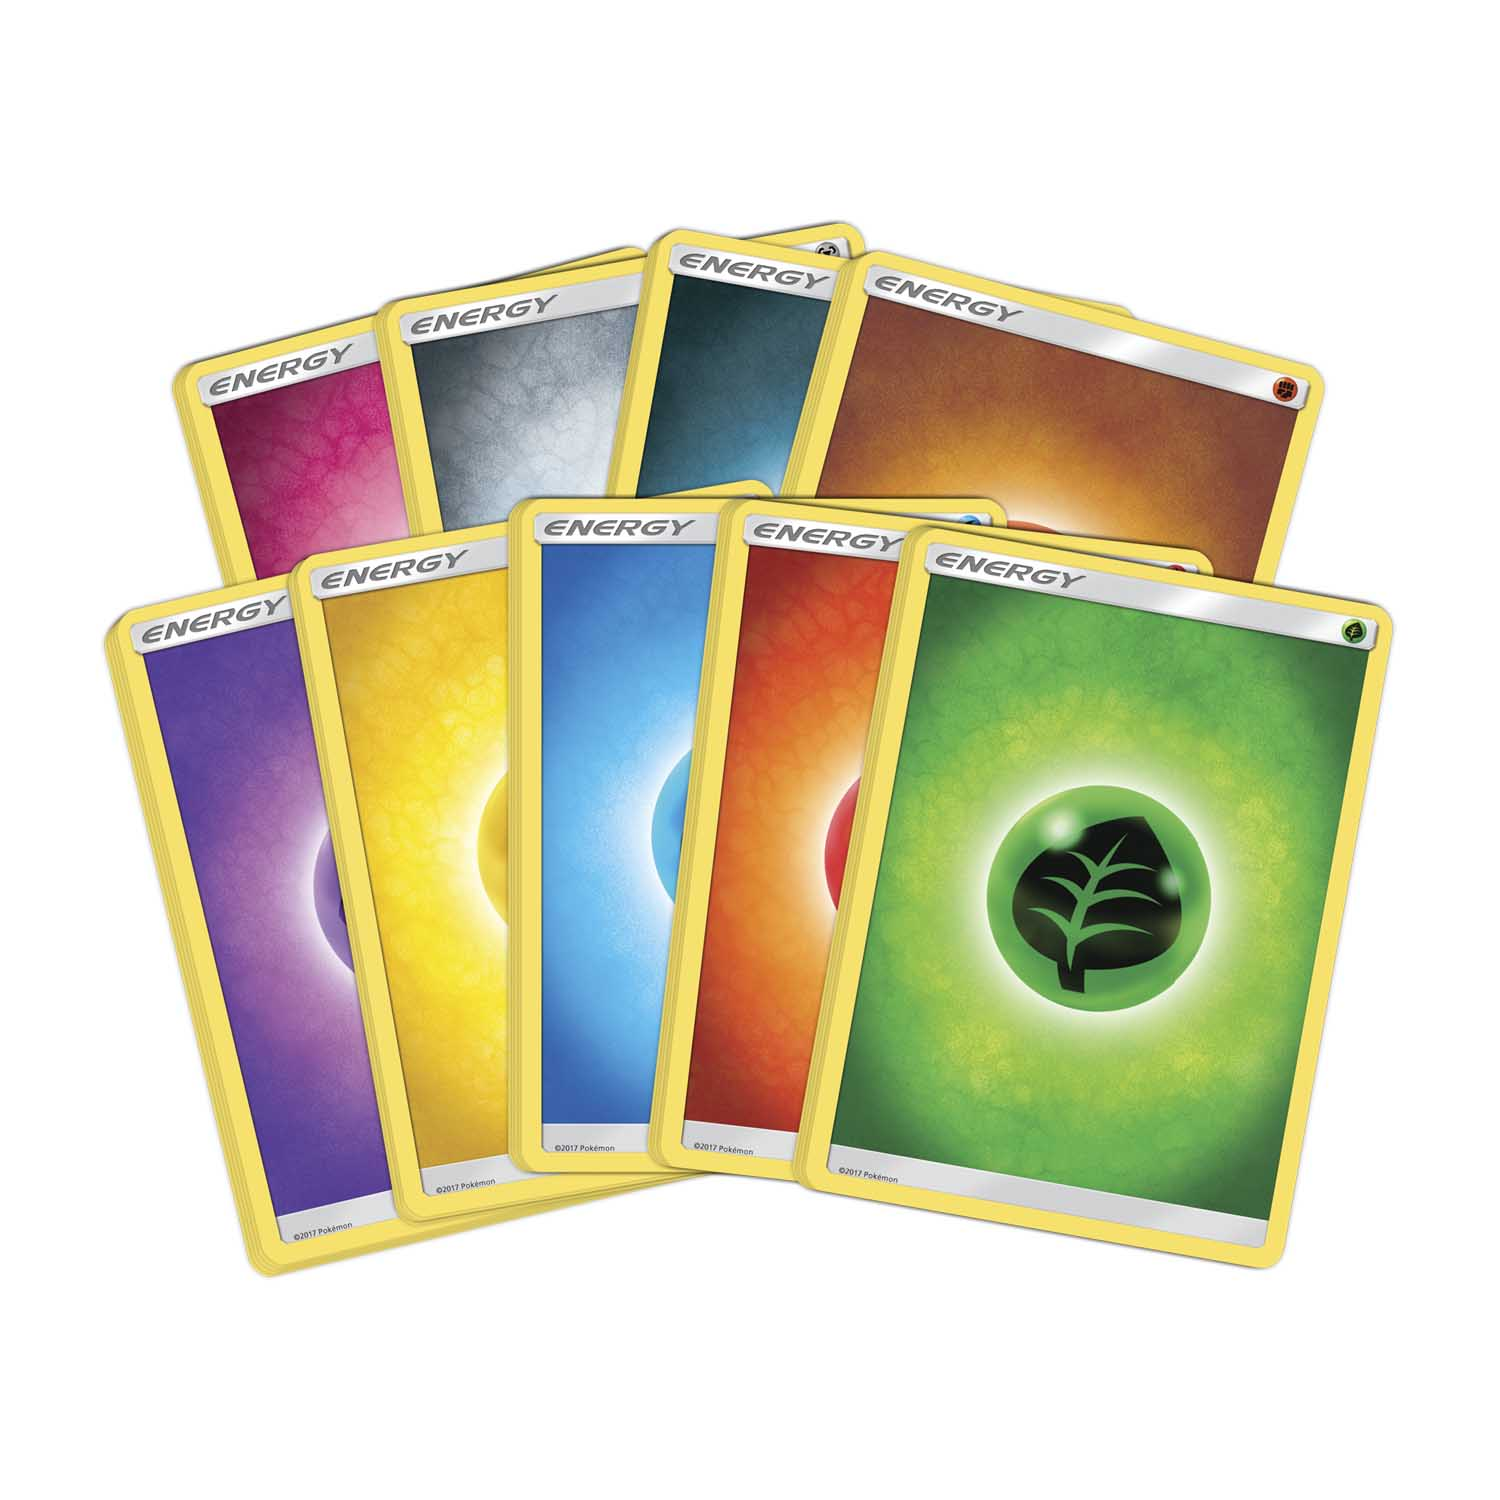 Mint Condition Basic Energy Cards 10 Pack Choose Your Type Pokemon TCG